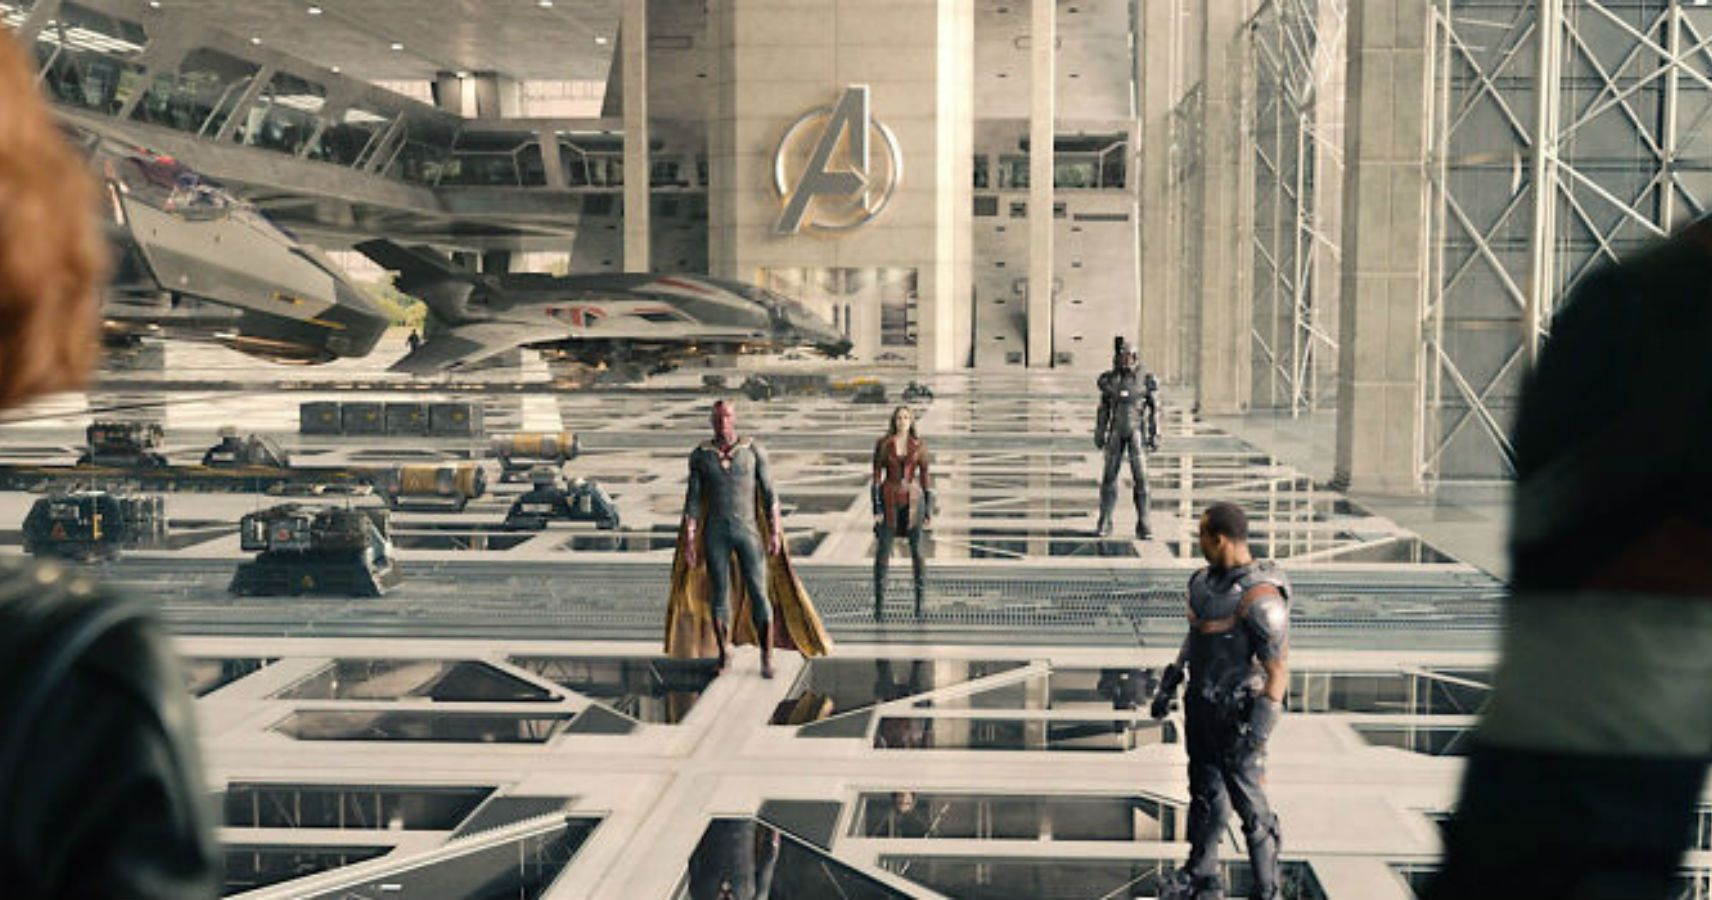 Marvel Fan Accidentally Spends The Day At The Avengers Compound